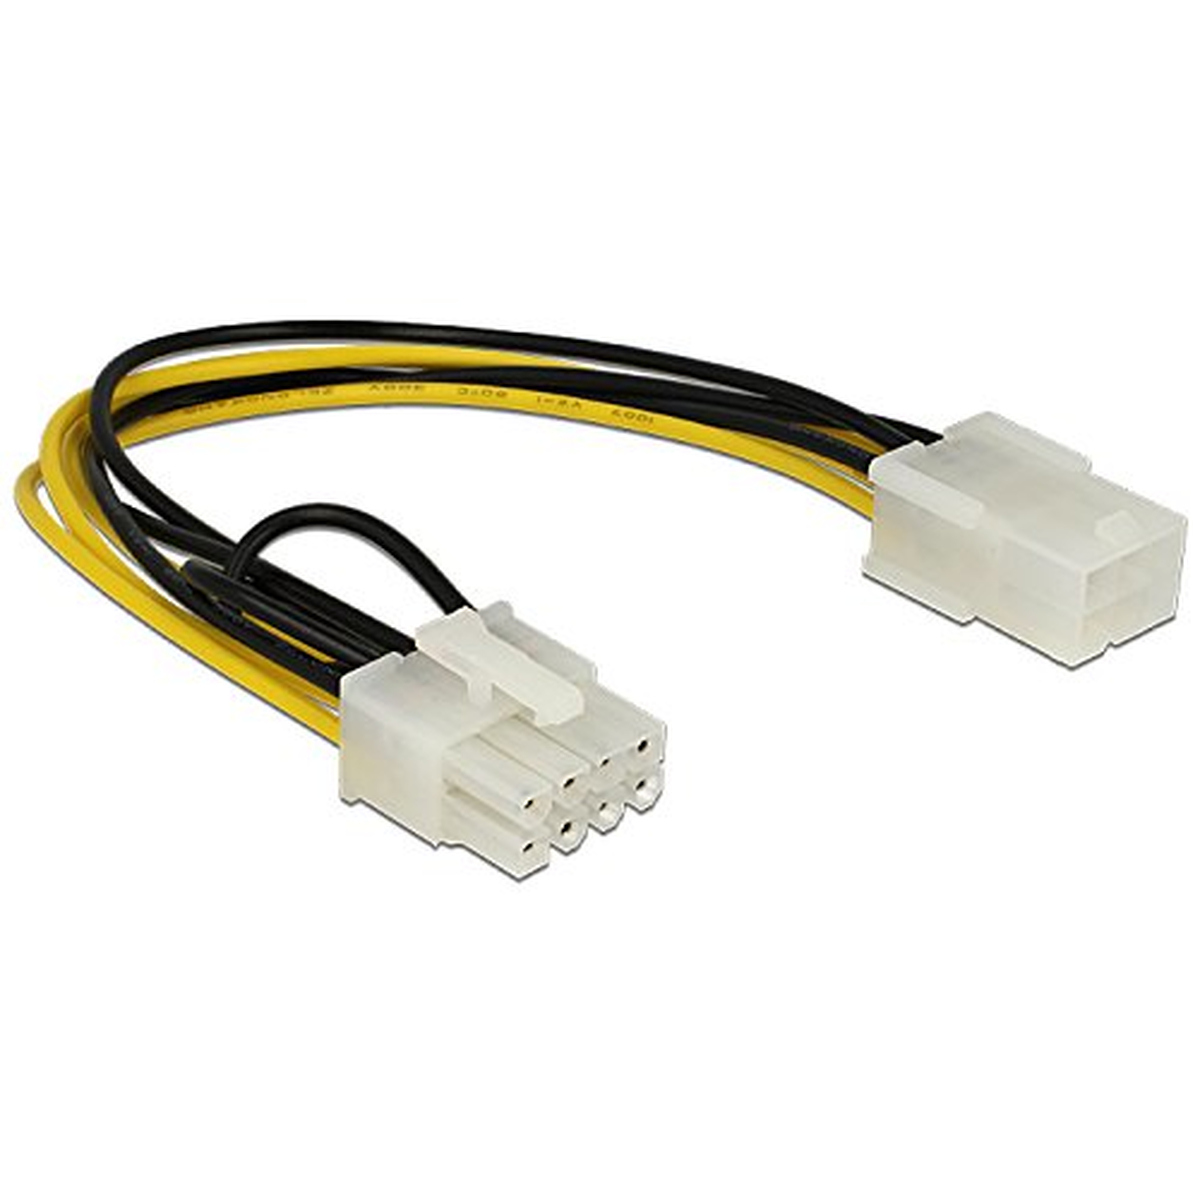 DeLOCK Kabel Power PCIE 6 Pin Bu > 8 Pin St PCIE